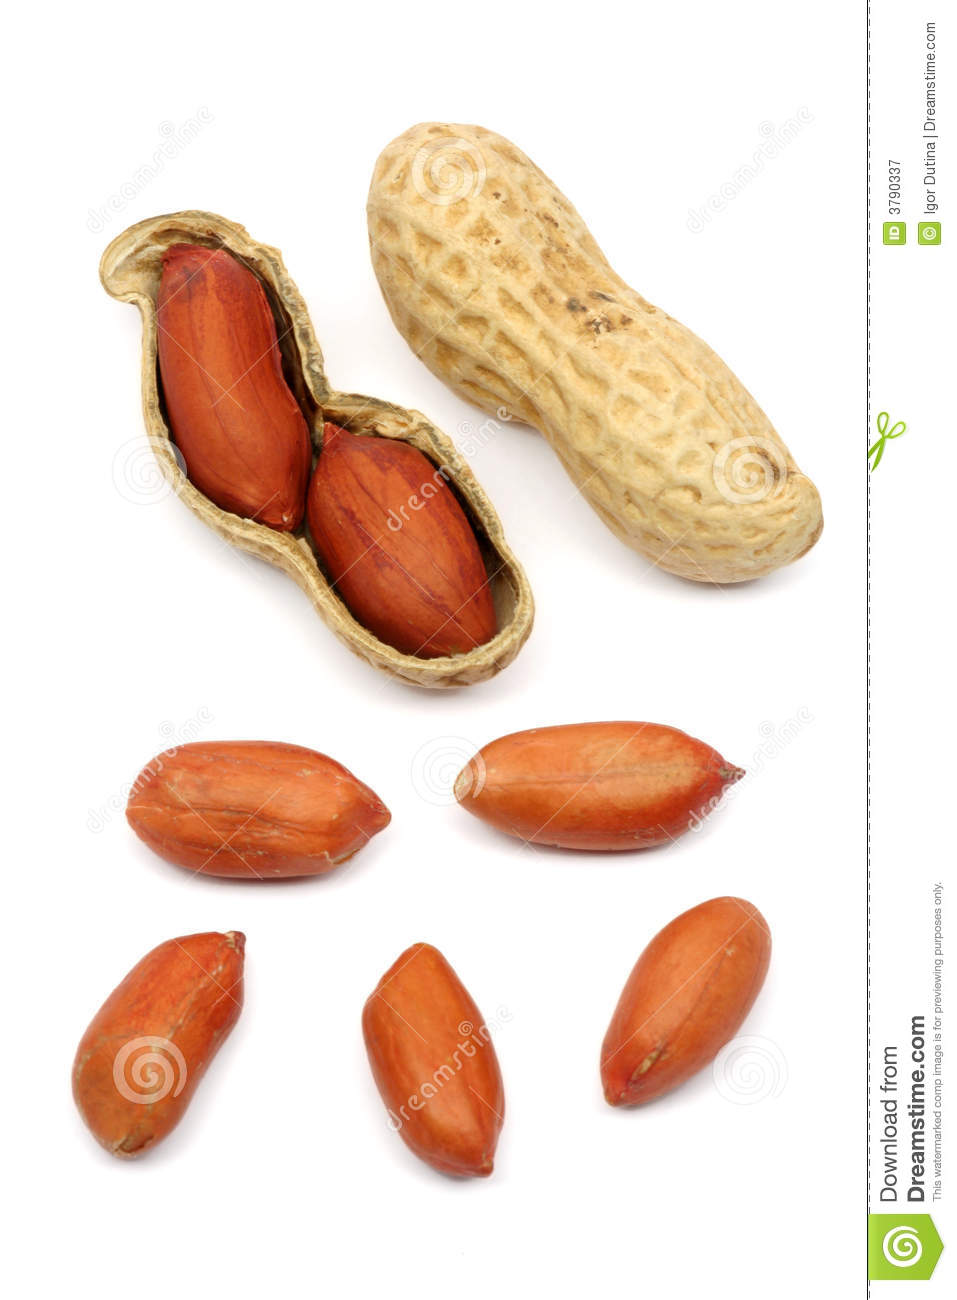 Roasted peanuts isolated